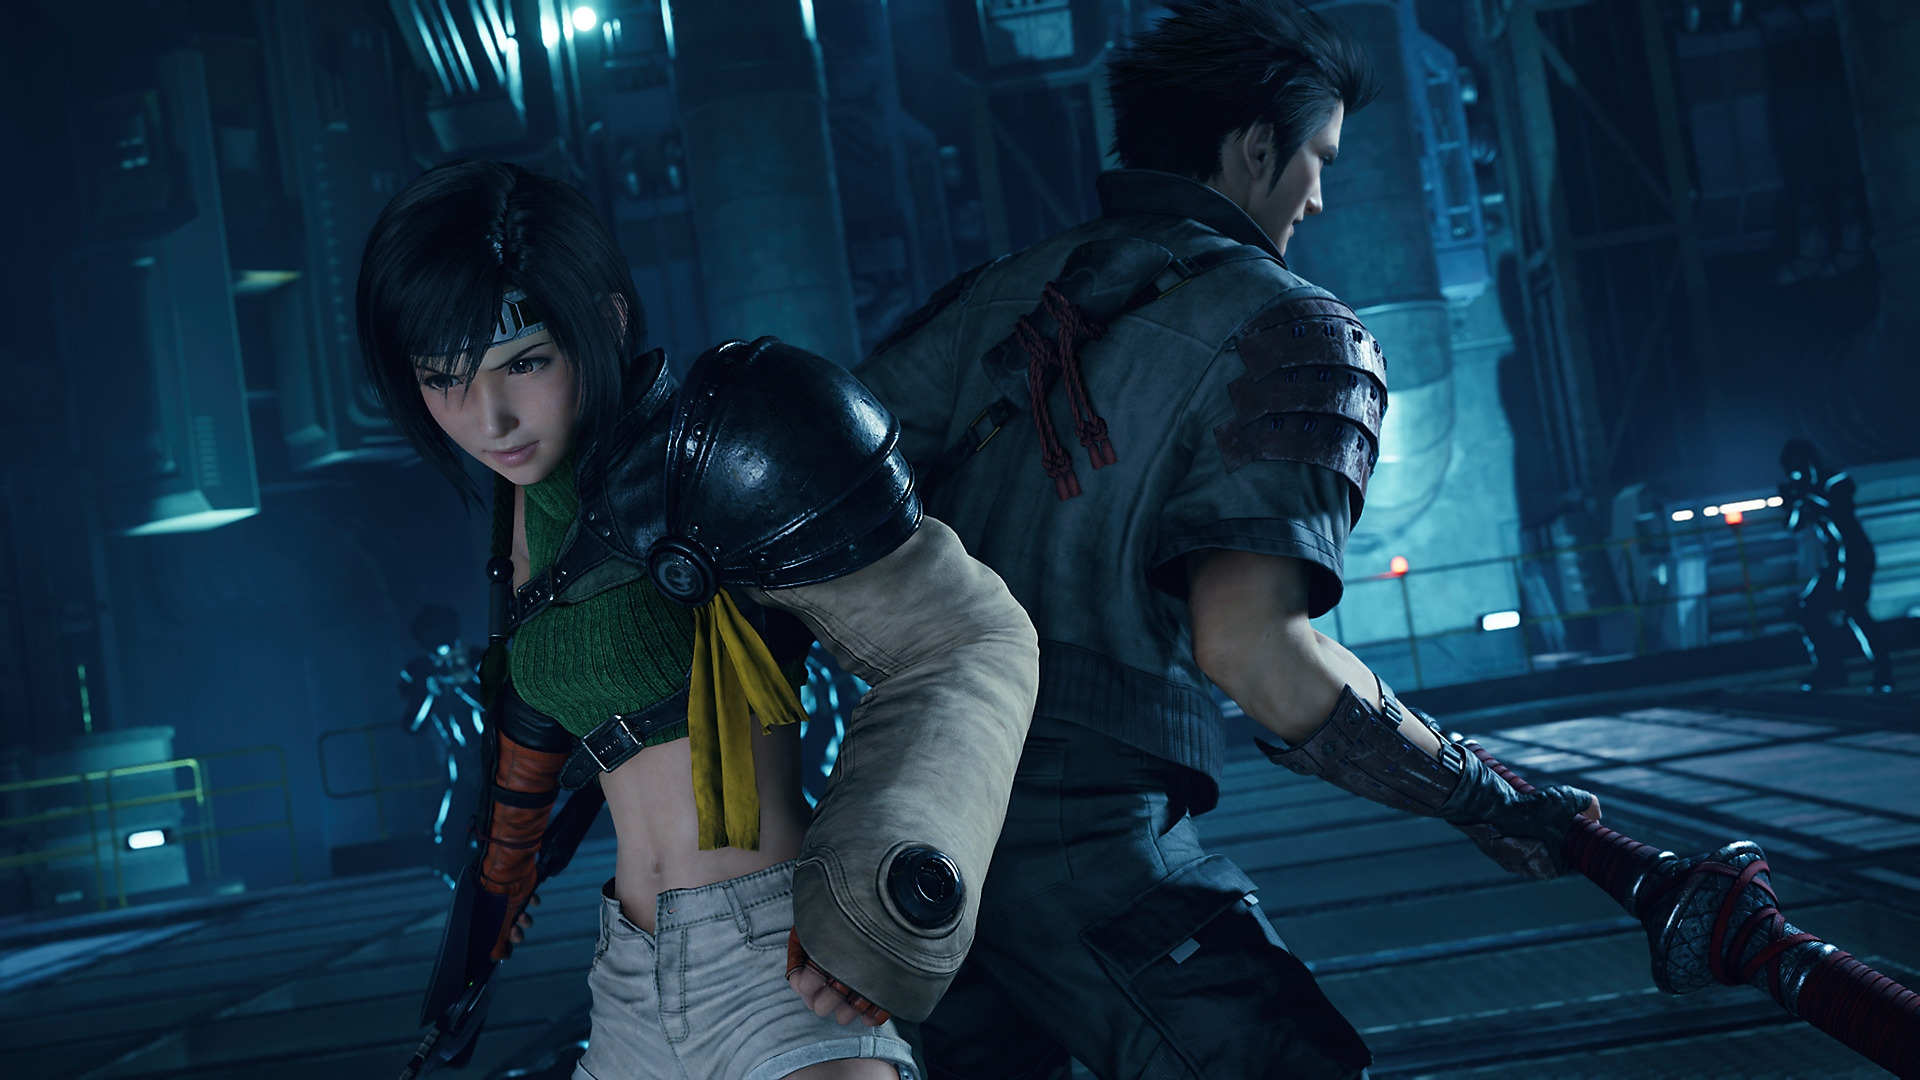 Final Fantasy VII Remake Intergrade - Capture d'écran de galerie 1